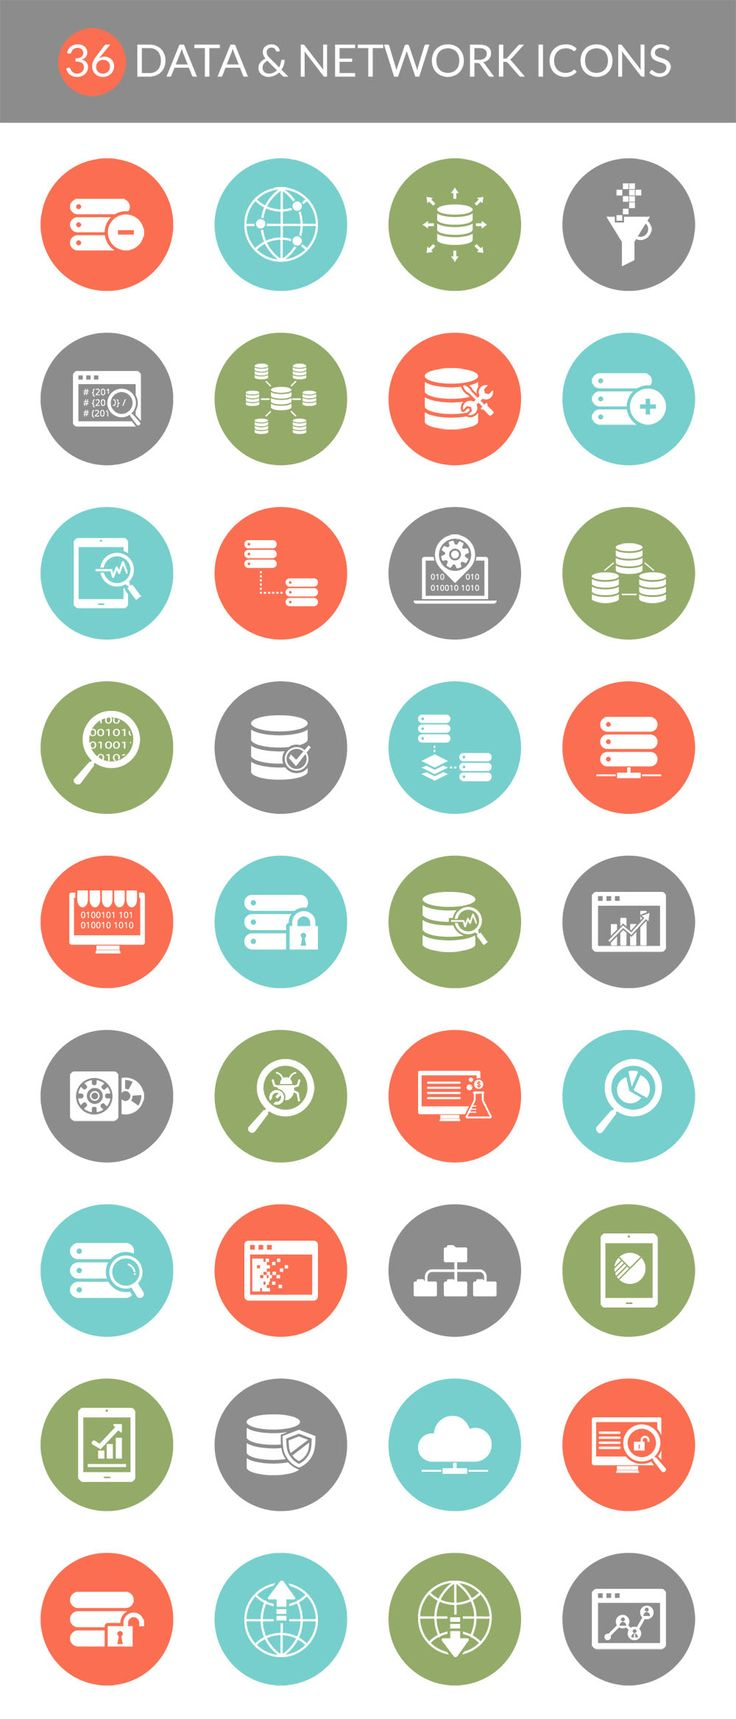 36 Free Data & Network Icons